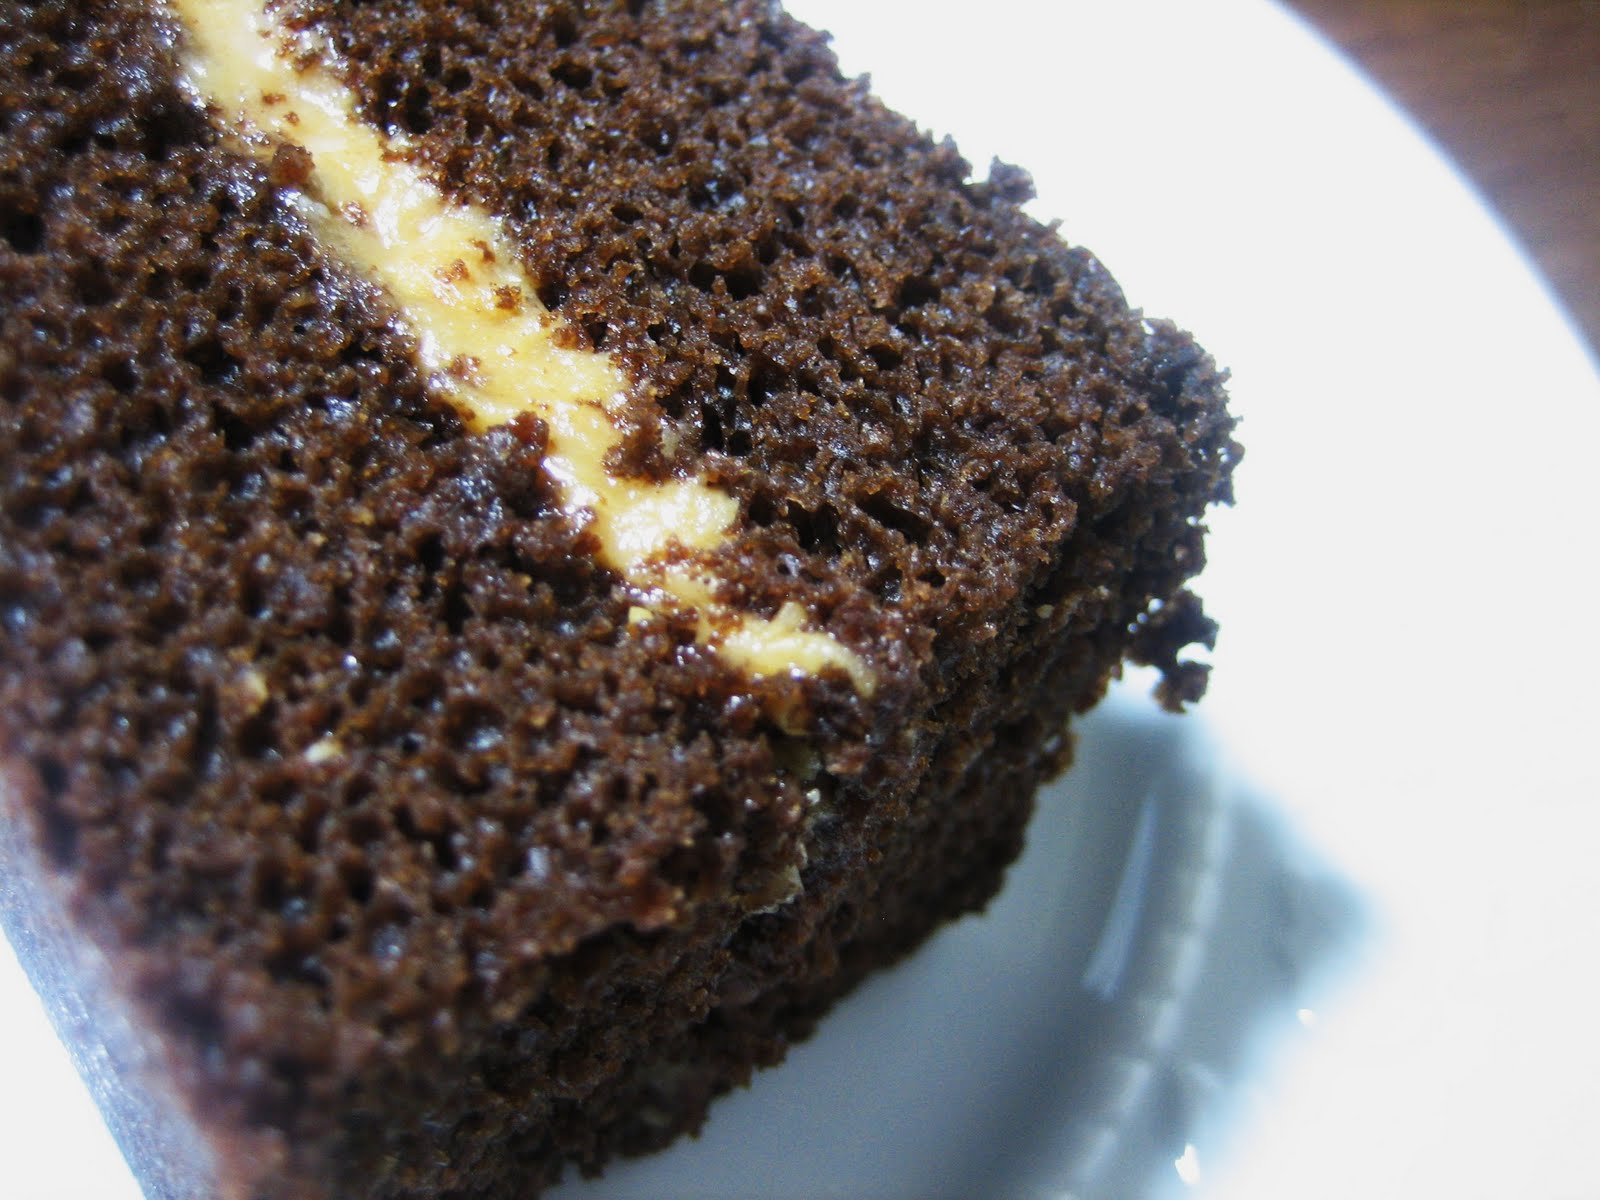 How To Make A Chocolate Cake From Scratch ~ peeinn.com